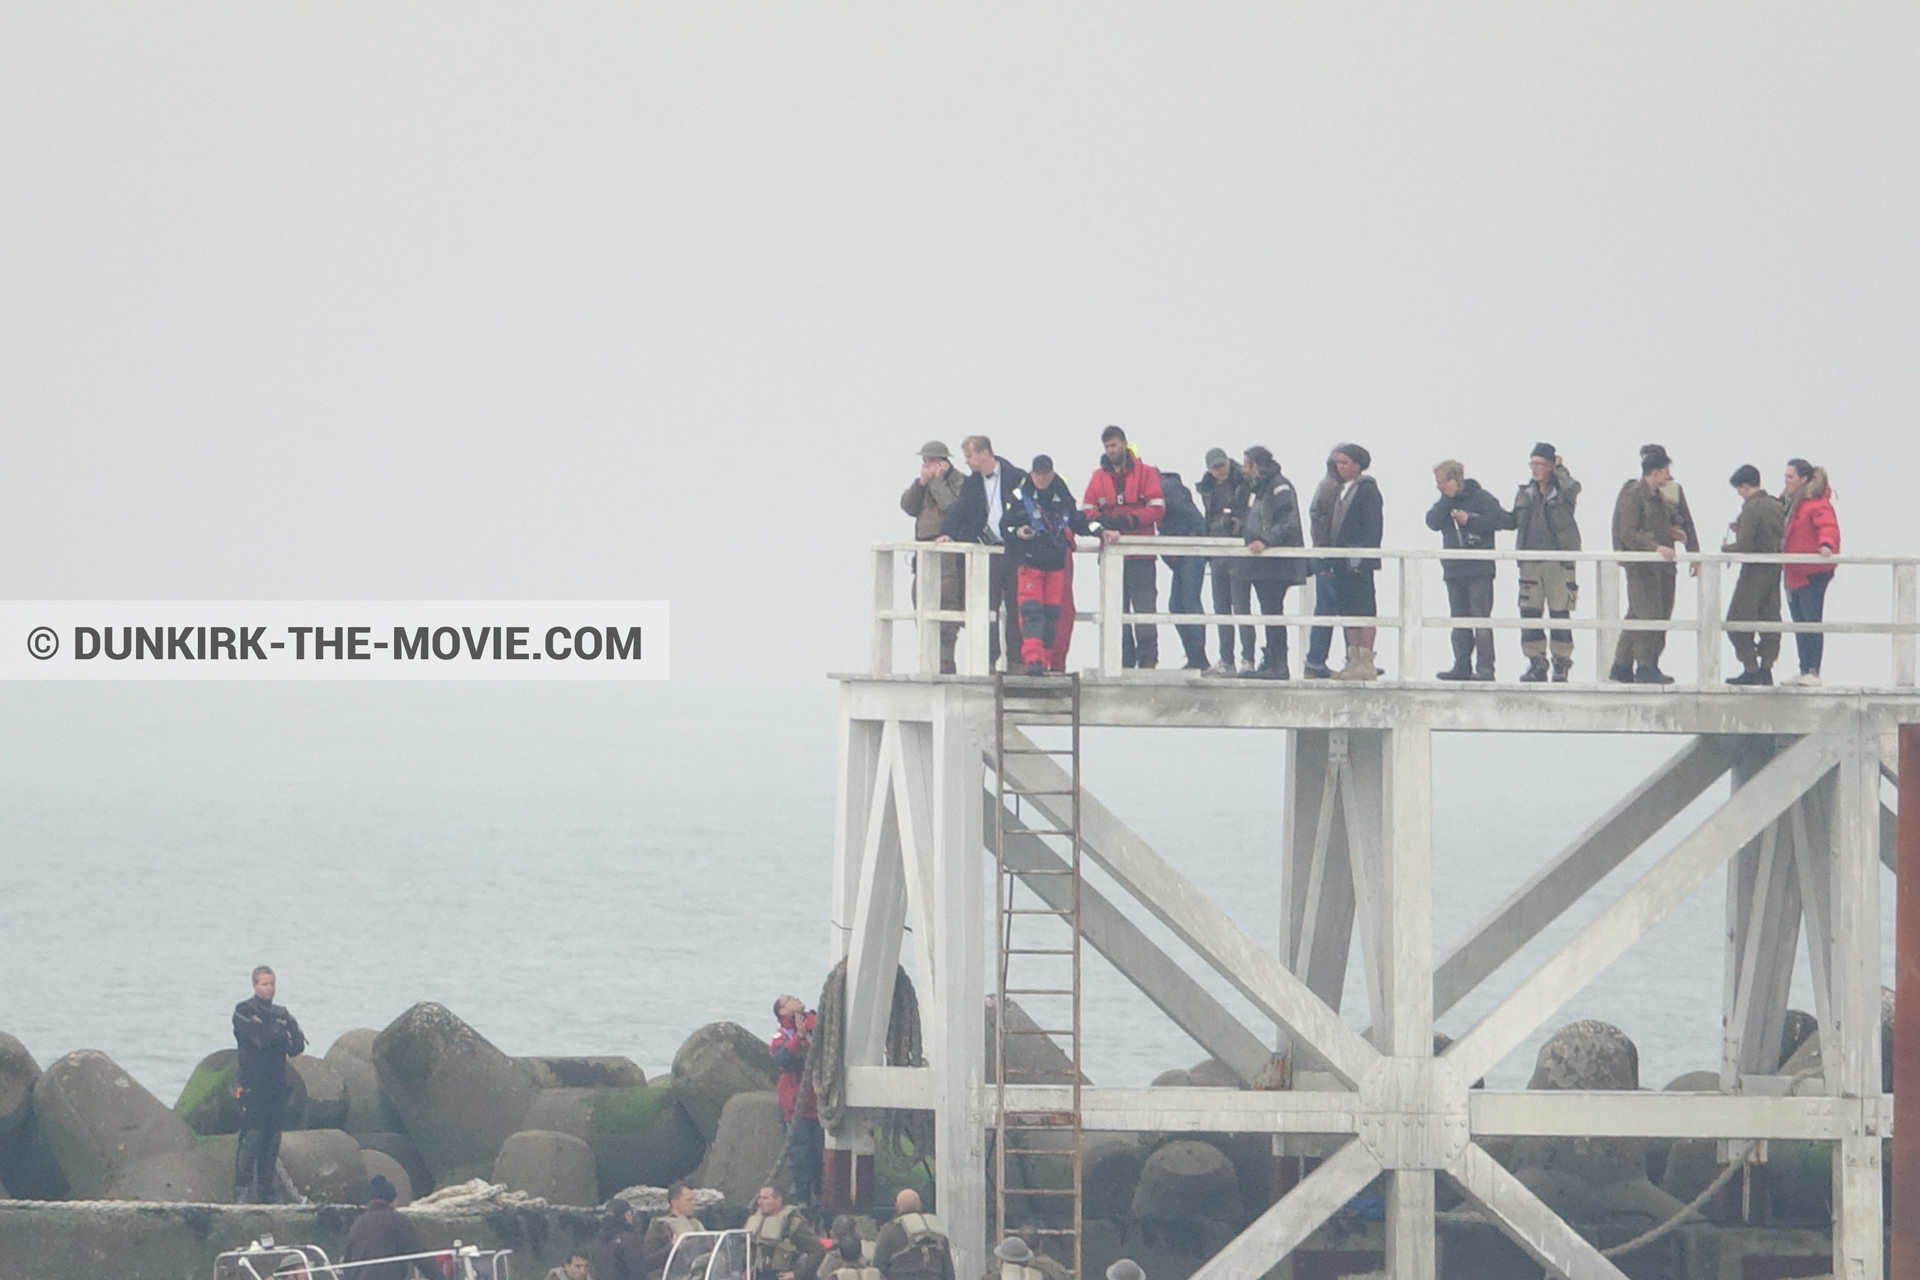 Picture with actor, grey sky, supernumeraries, Hoyte van Hoytema, EST pier, Christopher Nolan, inflatable dinghy,  from behind the scene of the Dunkirk movie by Nolan